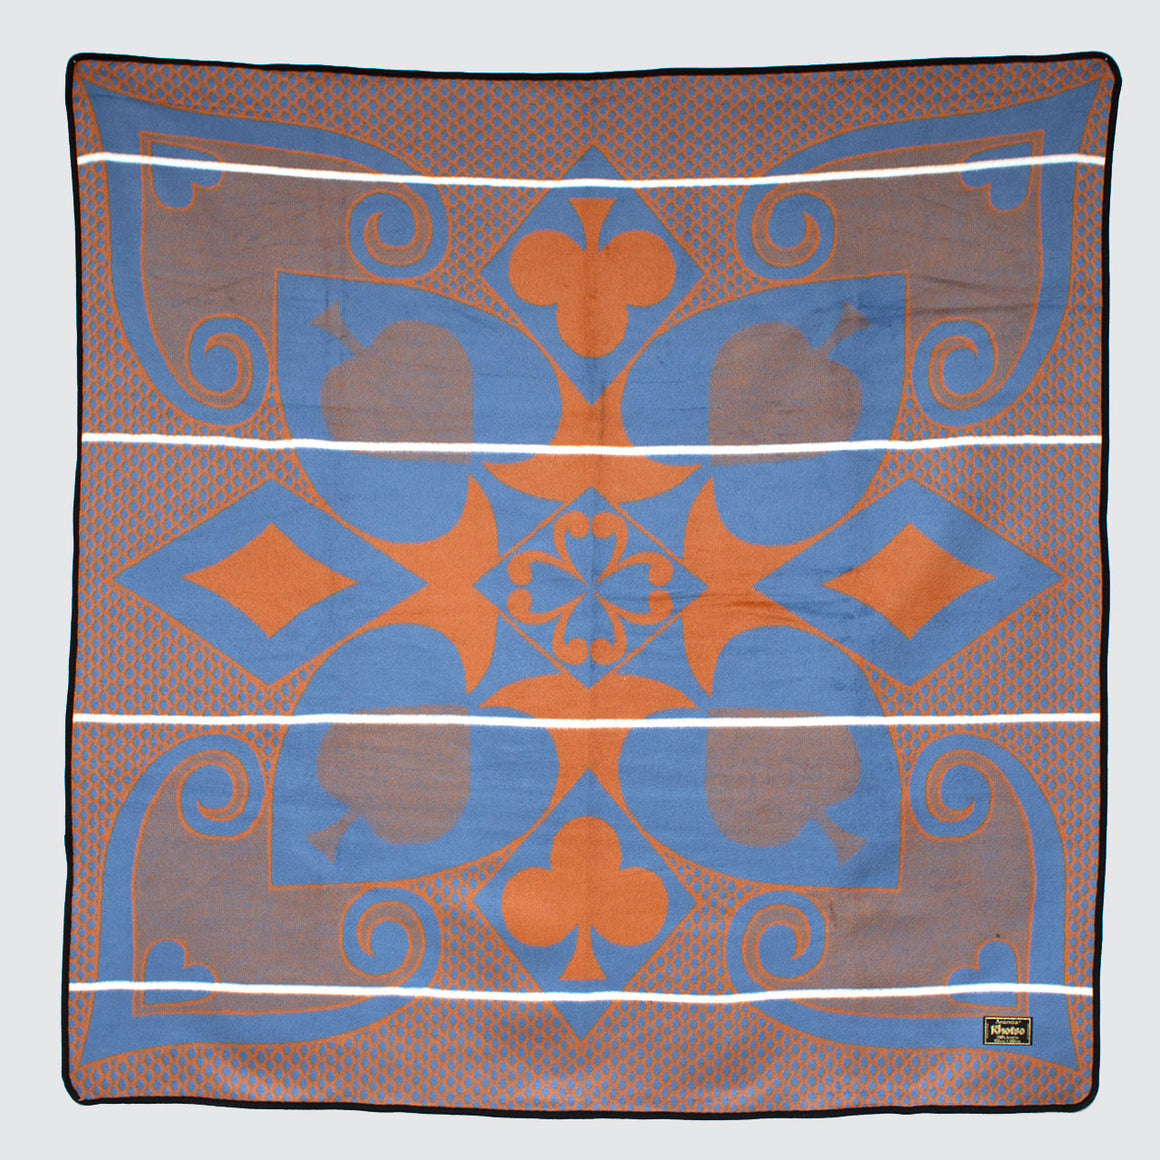 Khotso Tradtional Basotho Blanket 'Blue & Orange Cards'